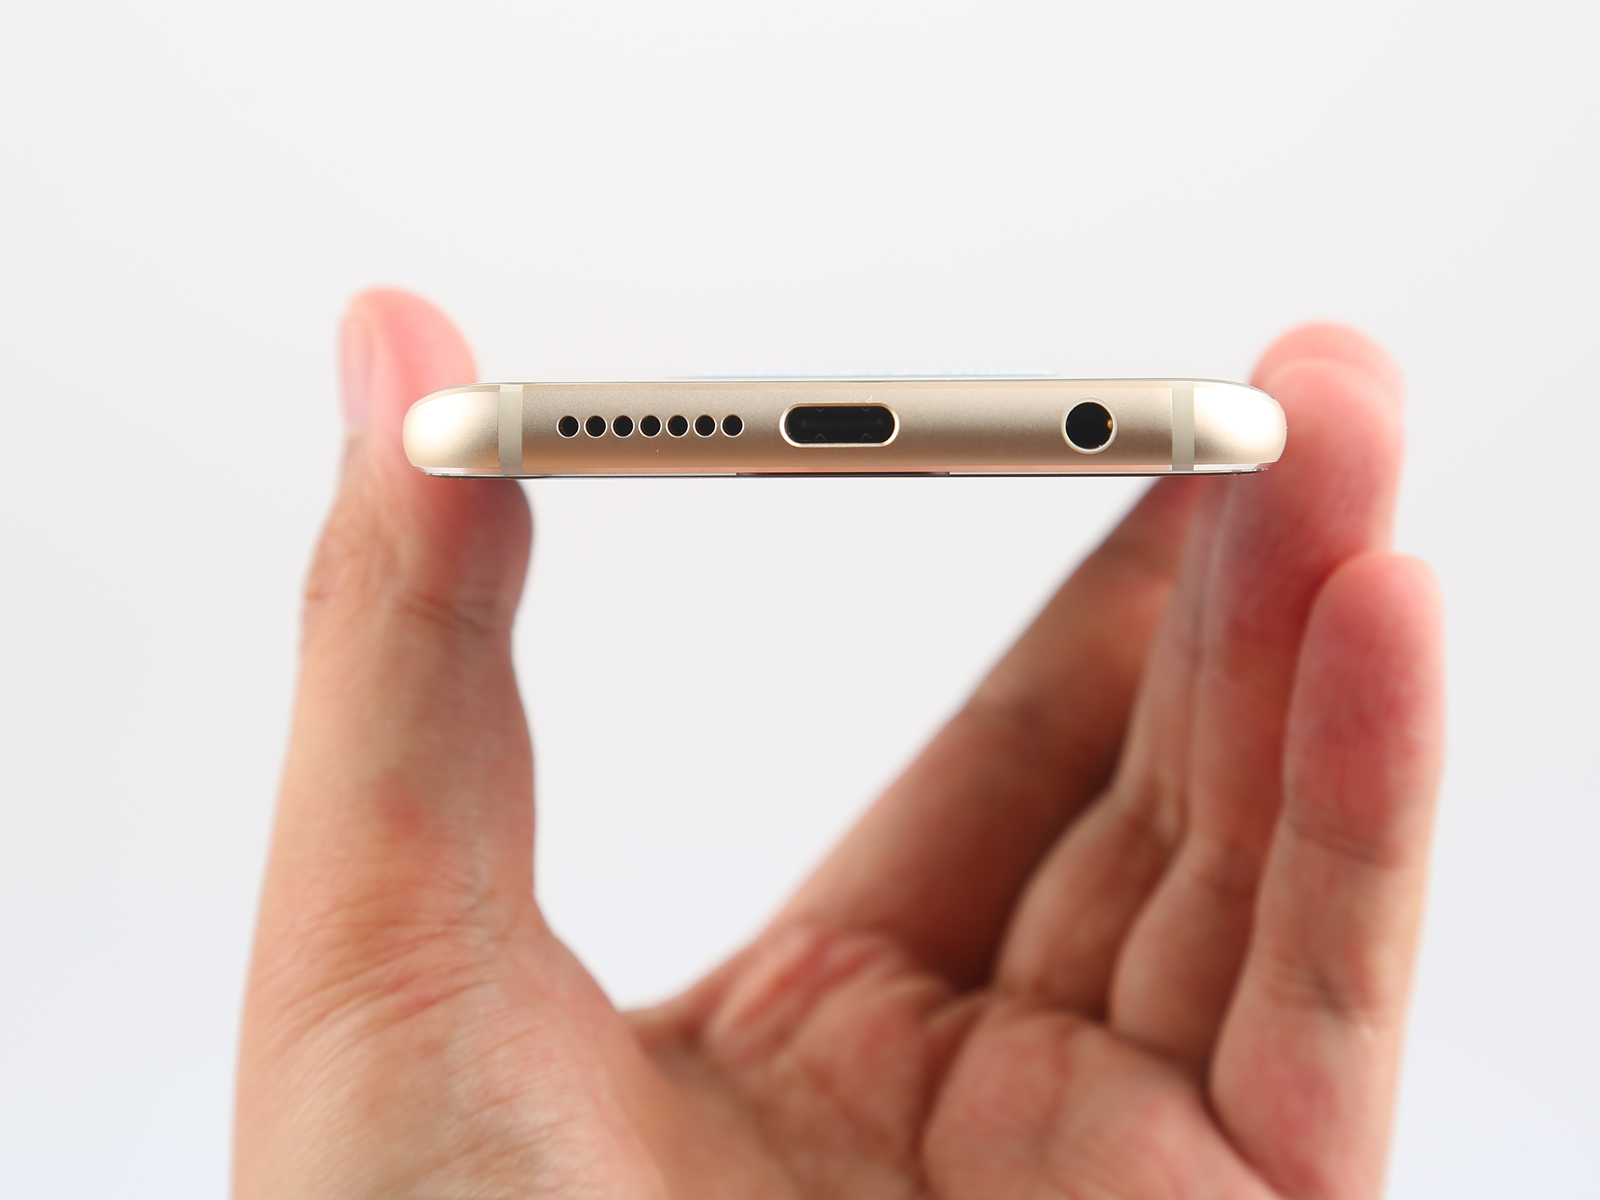 There Are Only Speaker Grille 35mm Headphone Jack And USB Type C Port At The Bottom